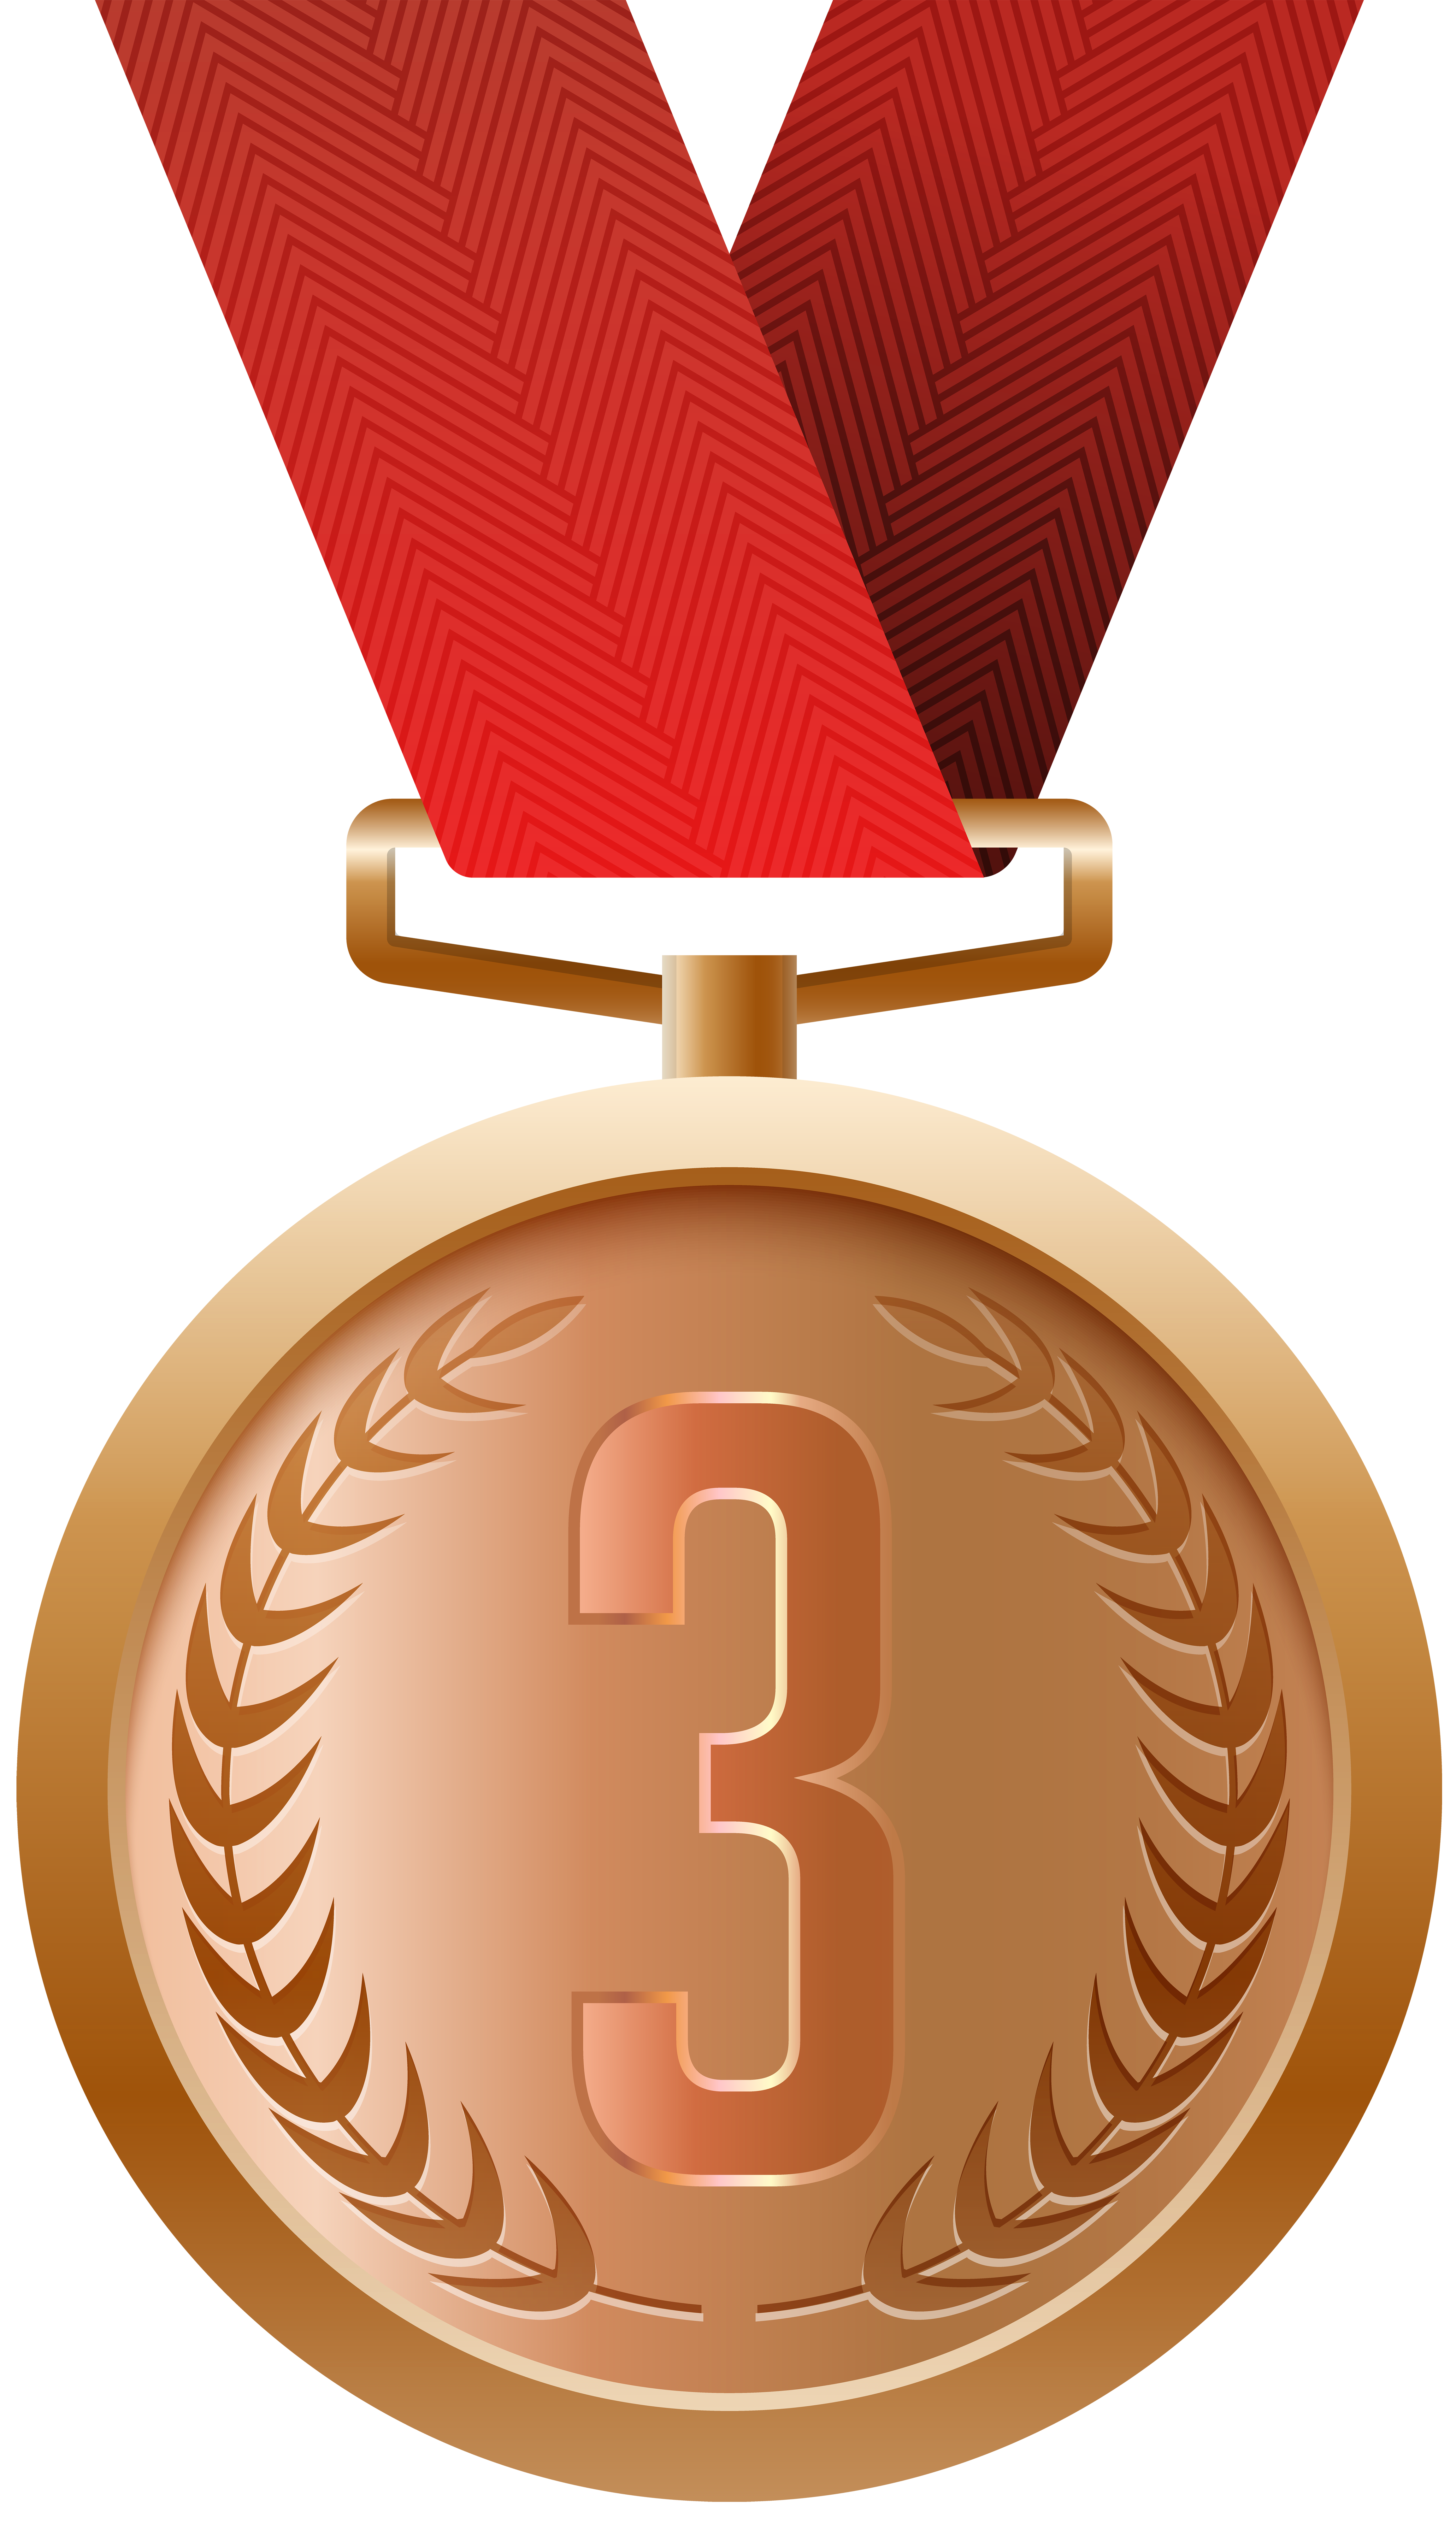 Pin By Mara Ortega On Kliparty Png 1 Clip Art Free Clip Art Medals